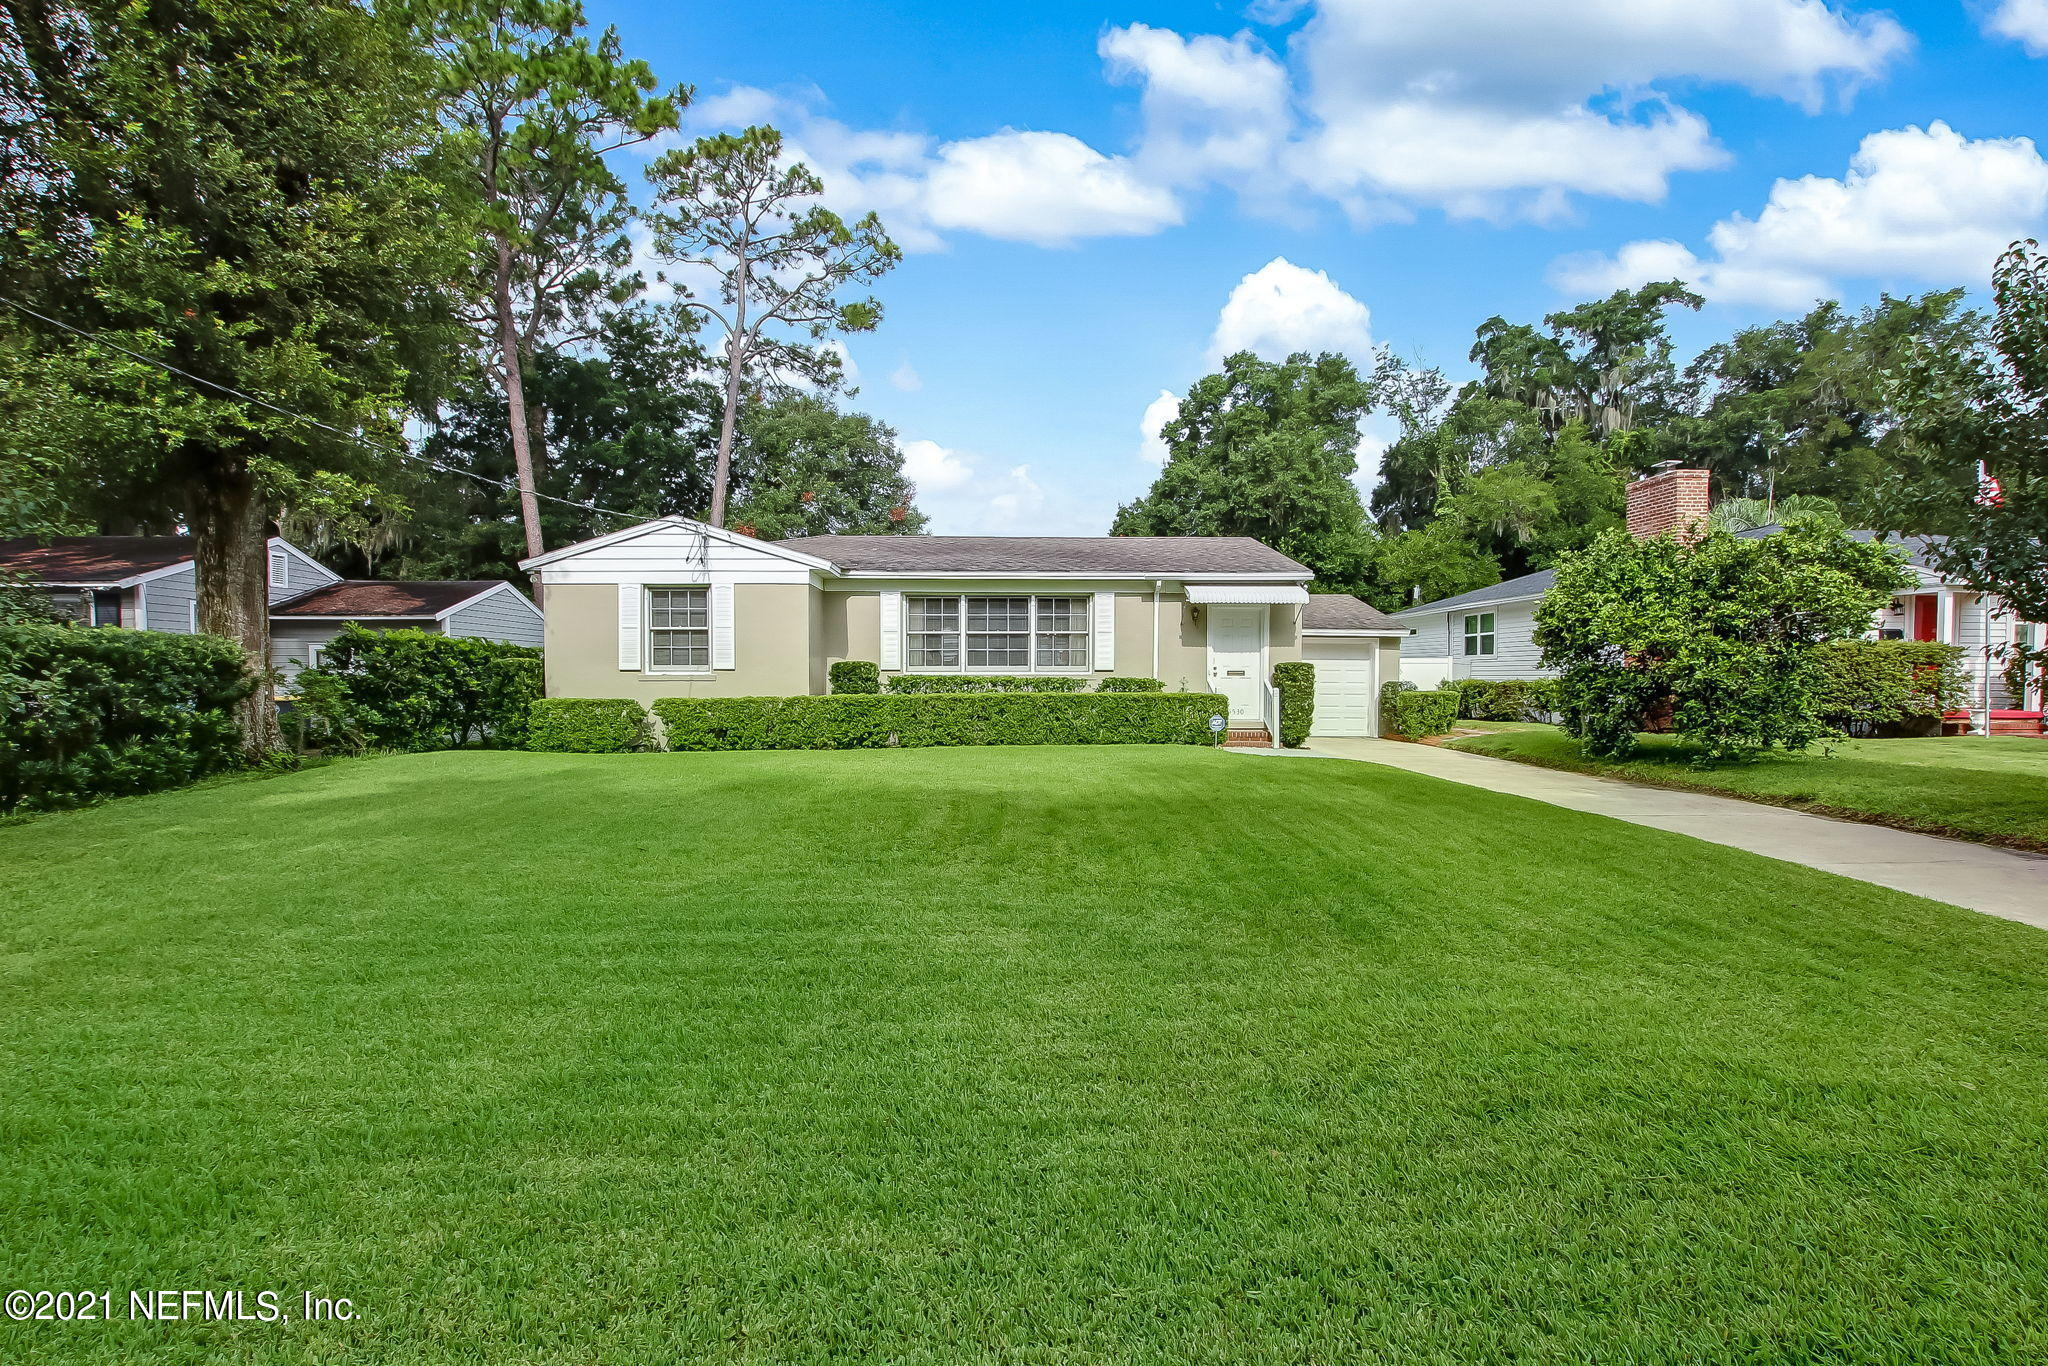 Exterior Front with lush green grass and